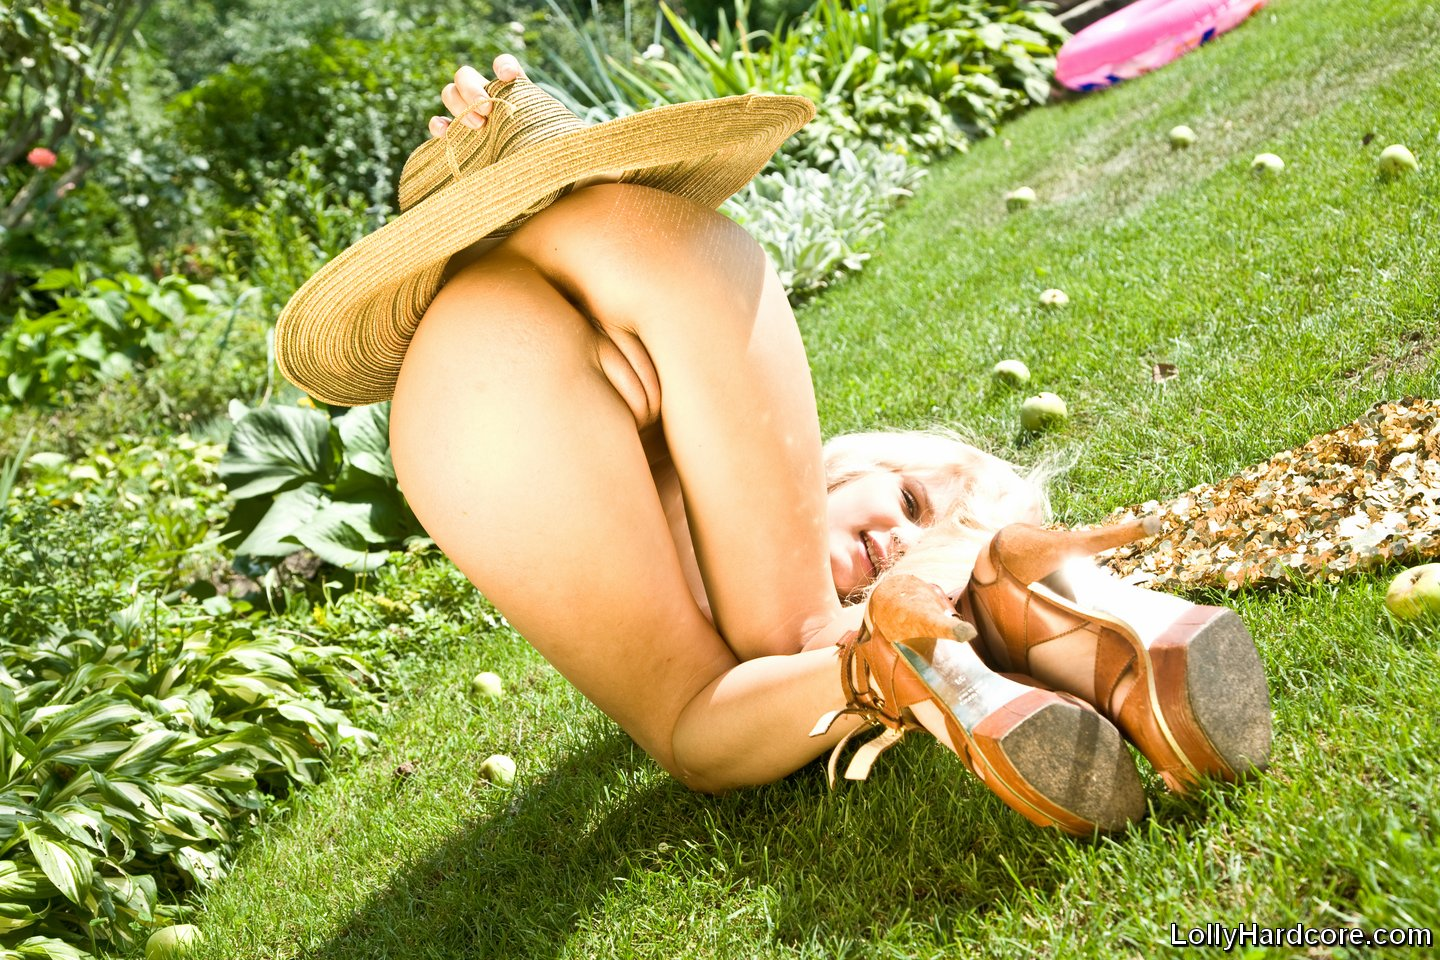 (0ー12)||tvn.hu nude imagesize:1440x960 a Super sweet model posing nude outdoors